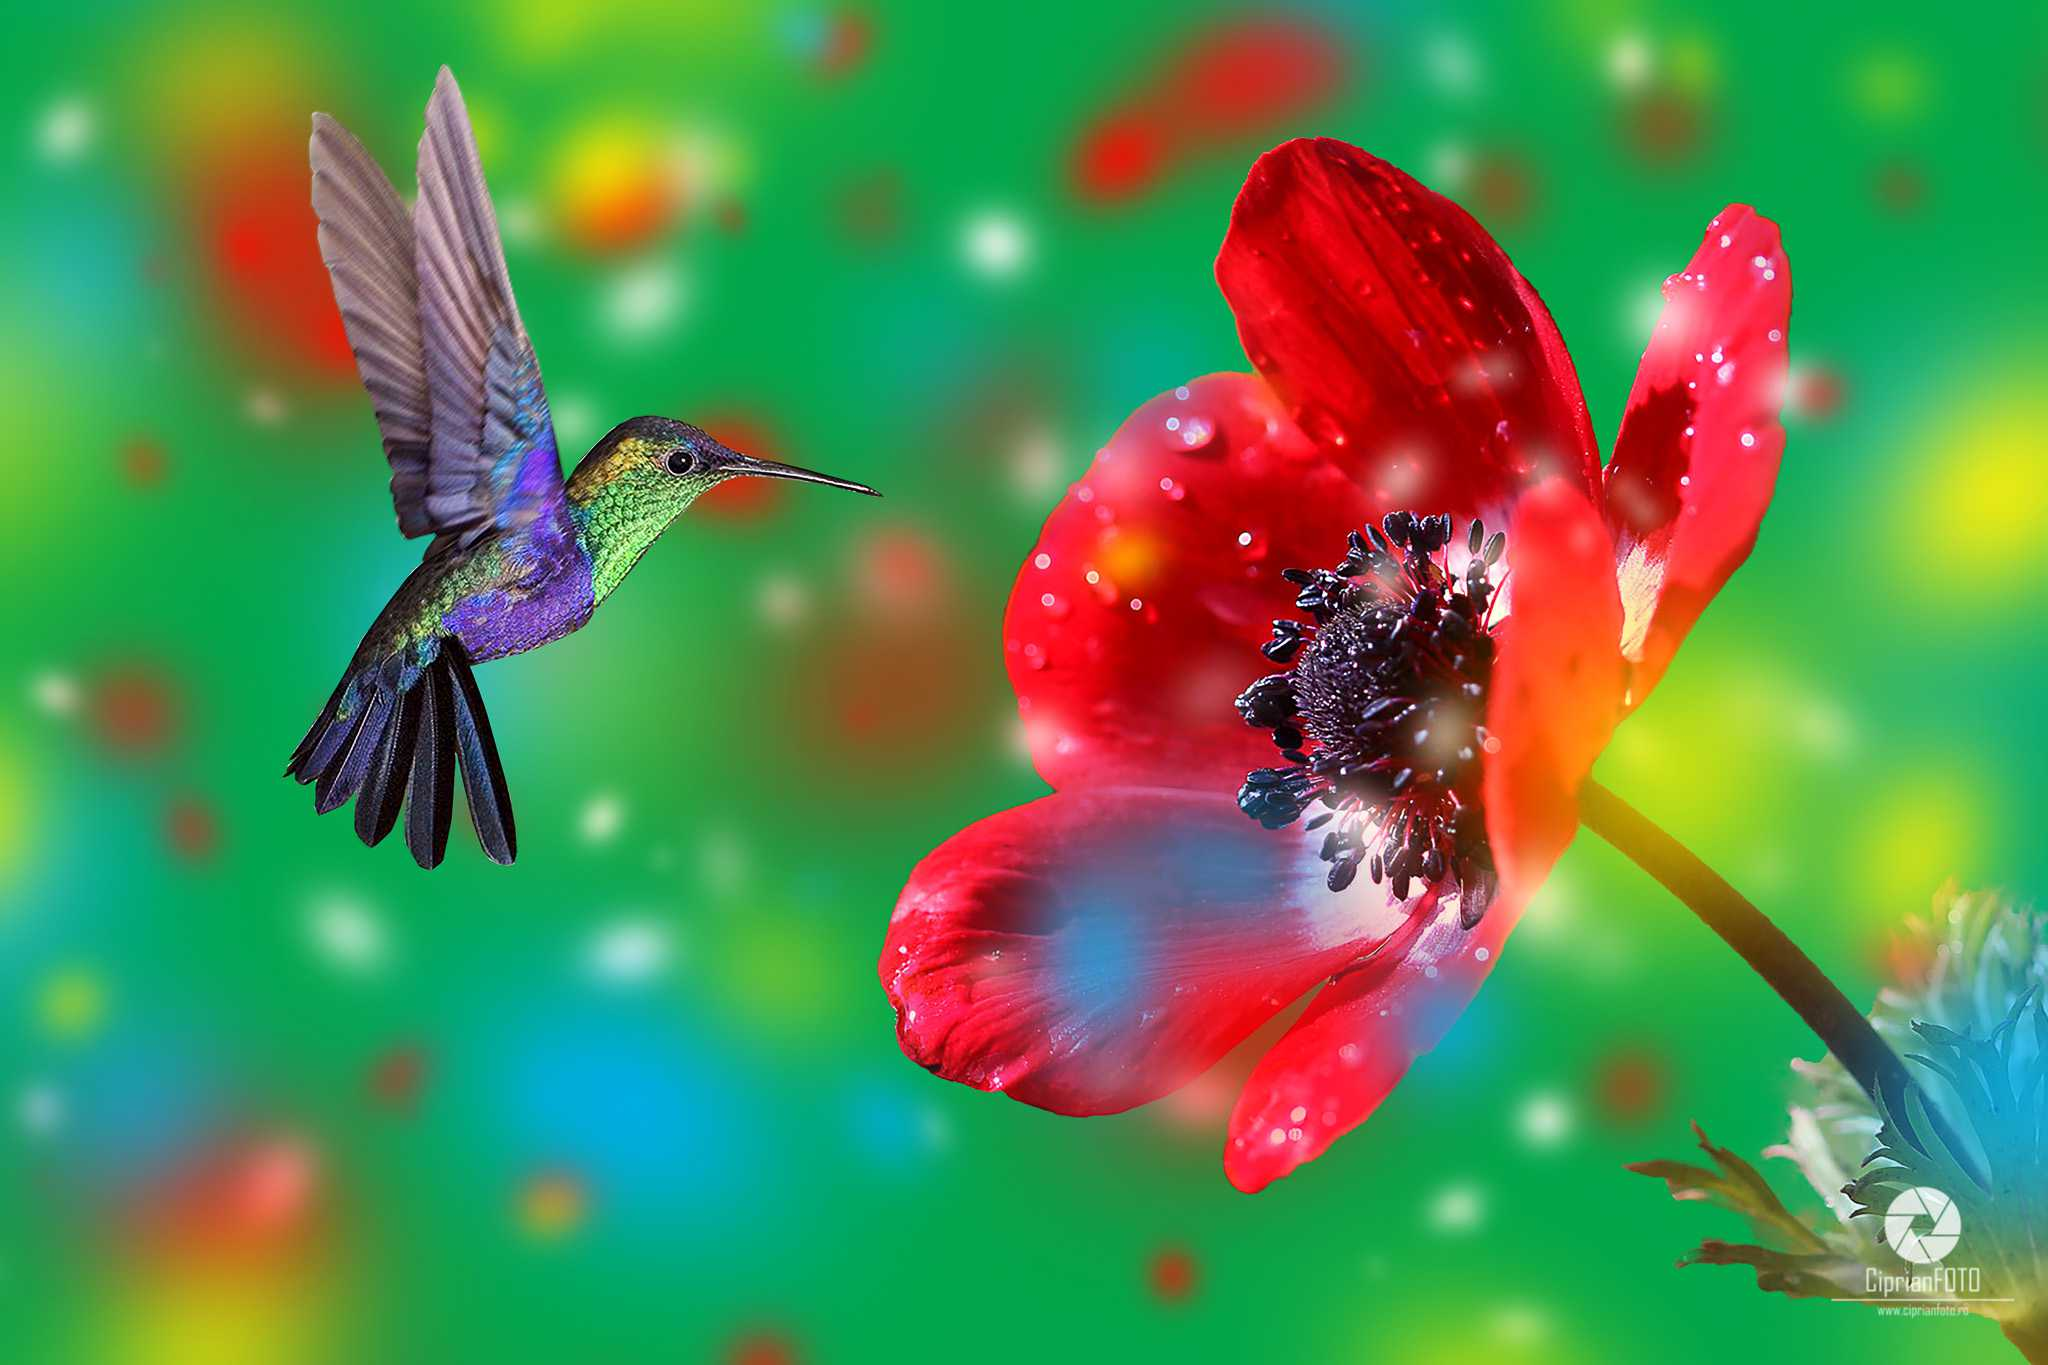 Hummingbird, Photoshop Manipulation Tutorial, CiprianFOTO